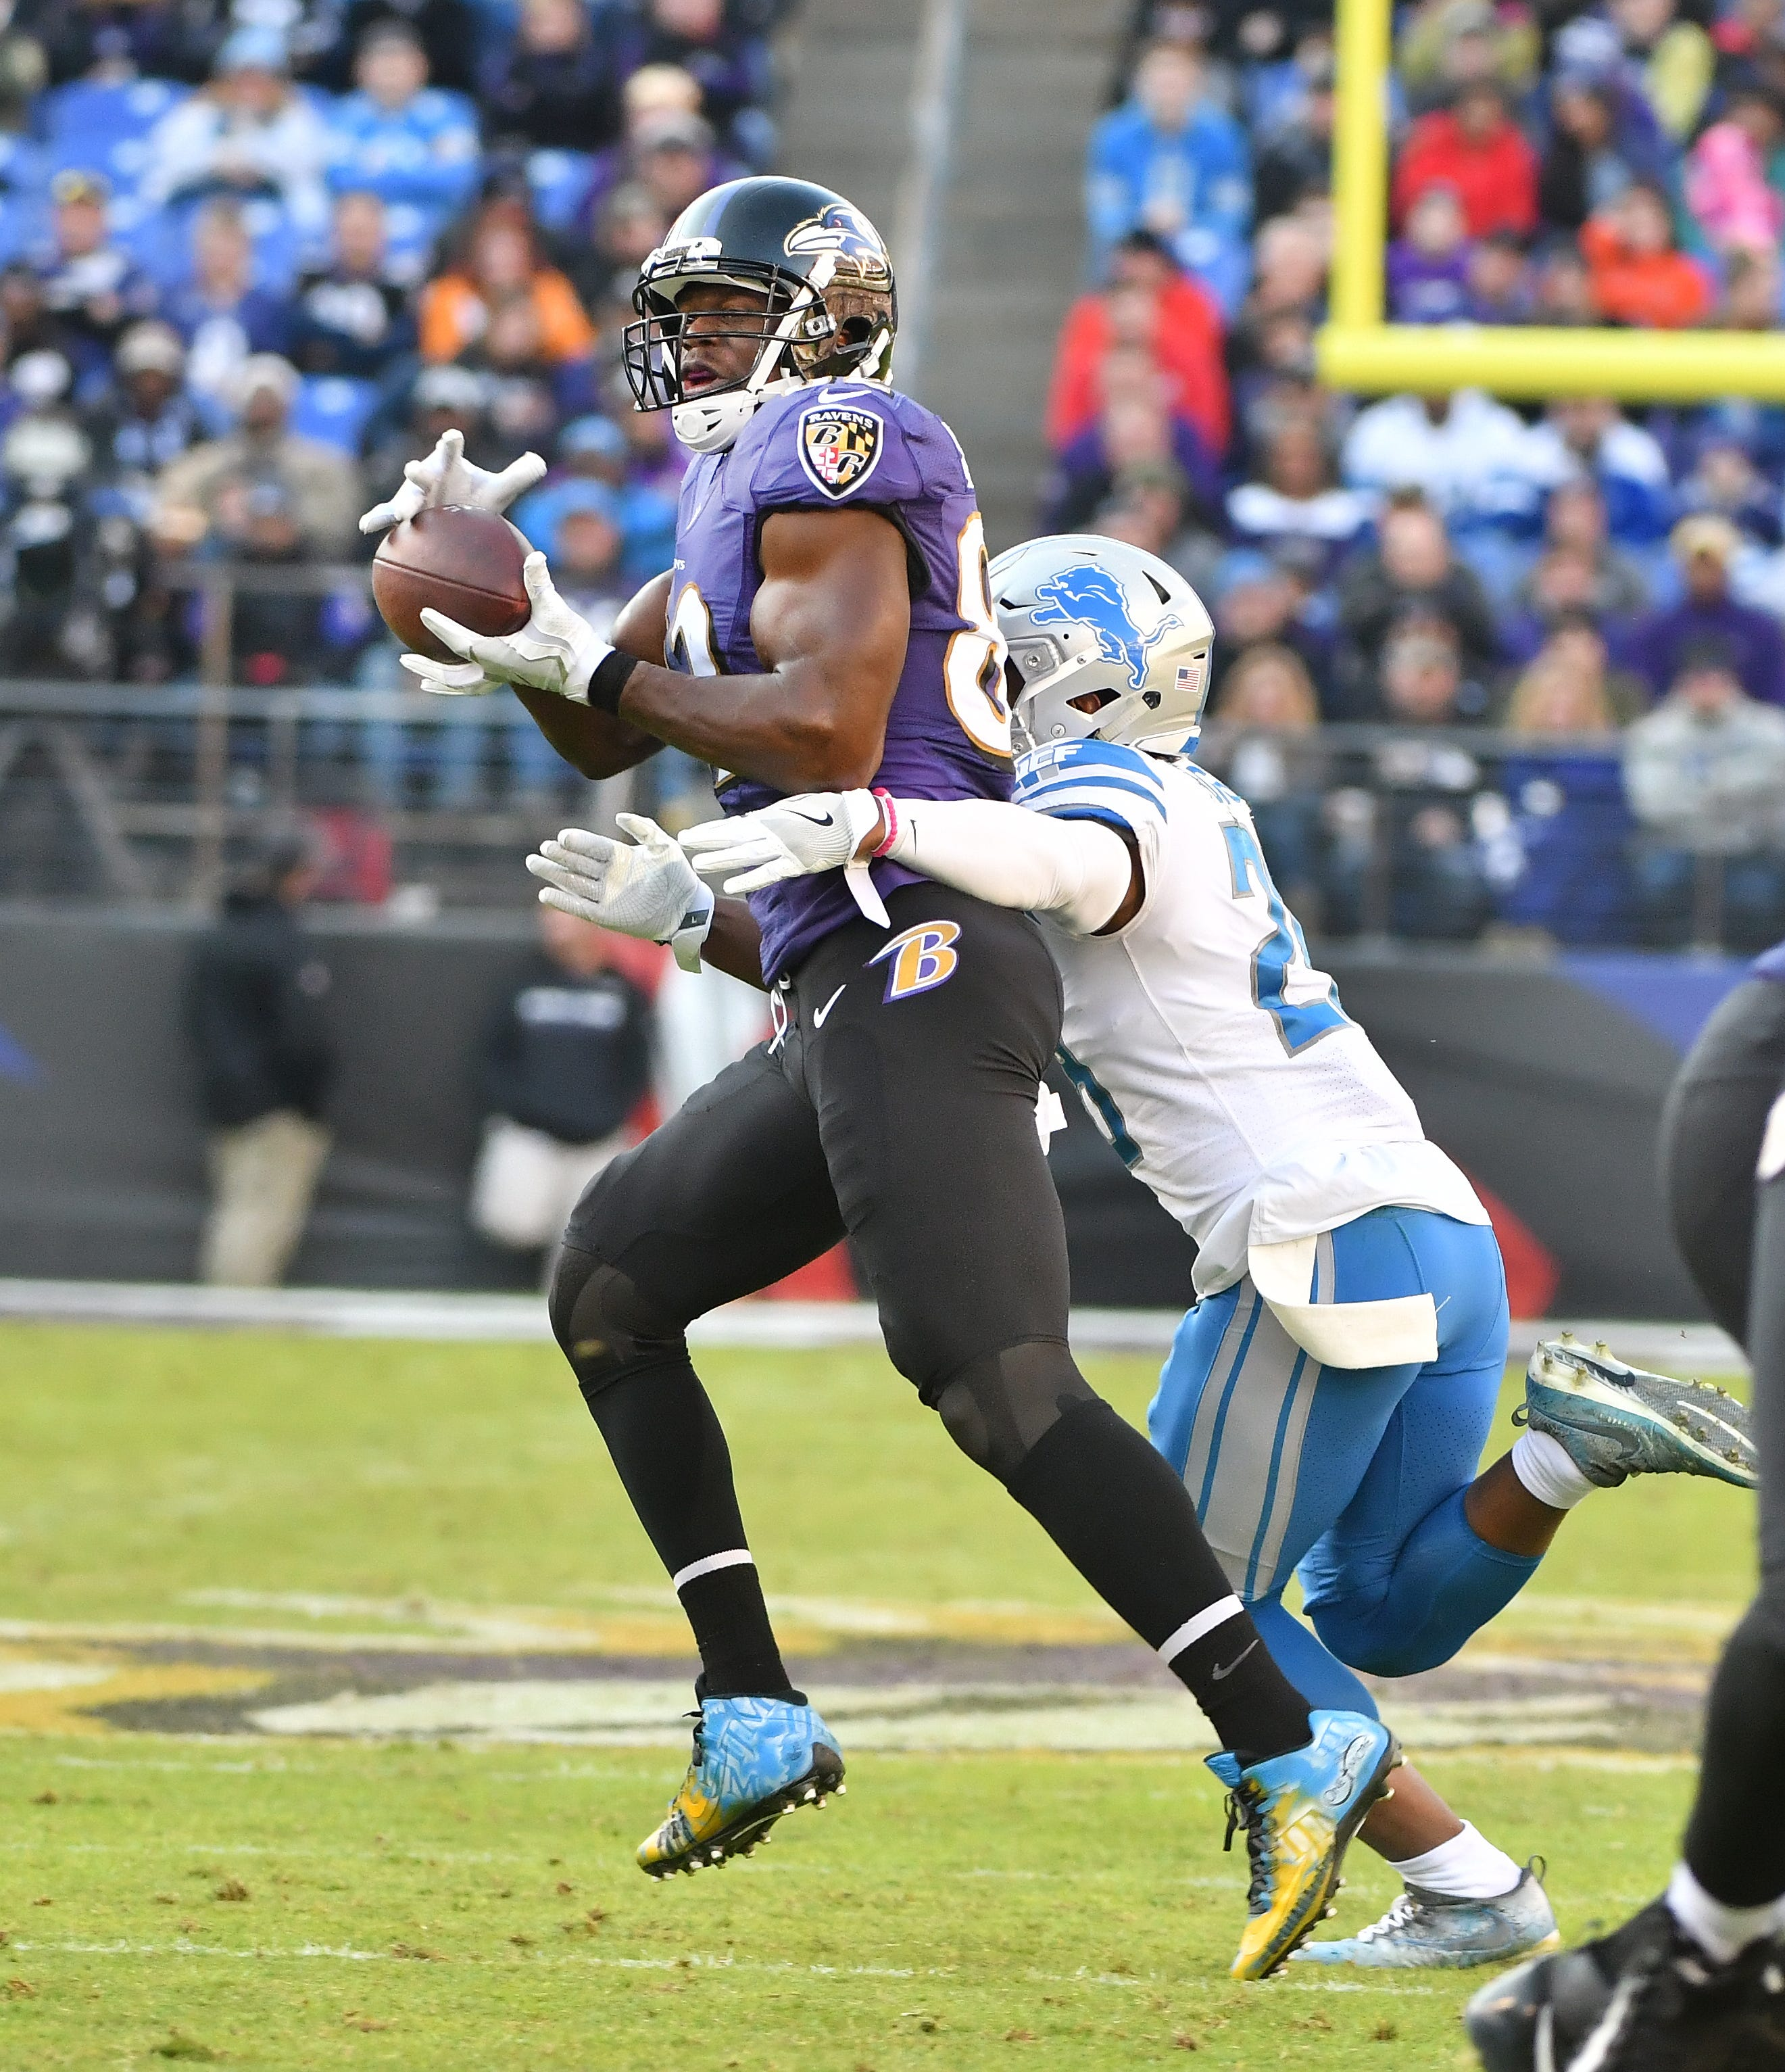 Ravens tight ends continue to take chunks out of the